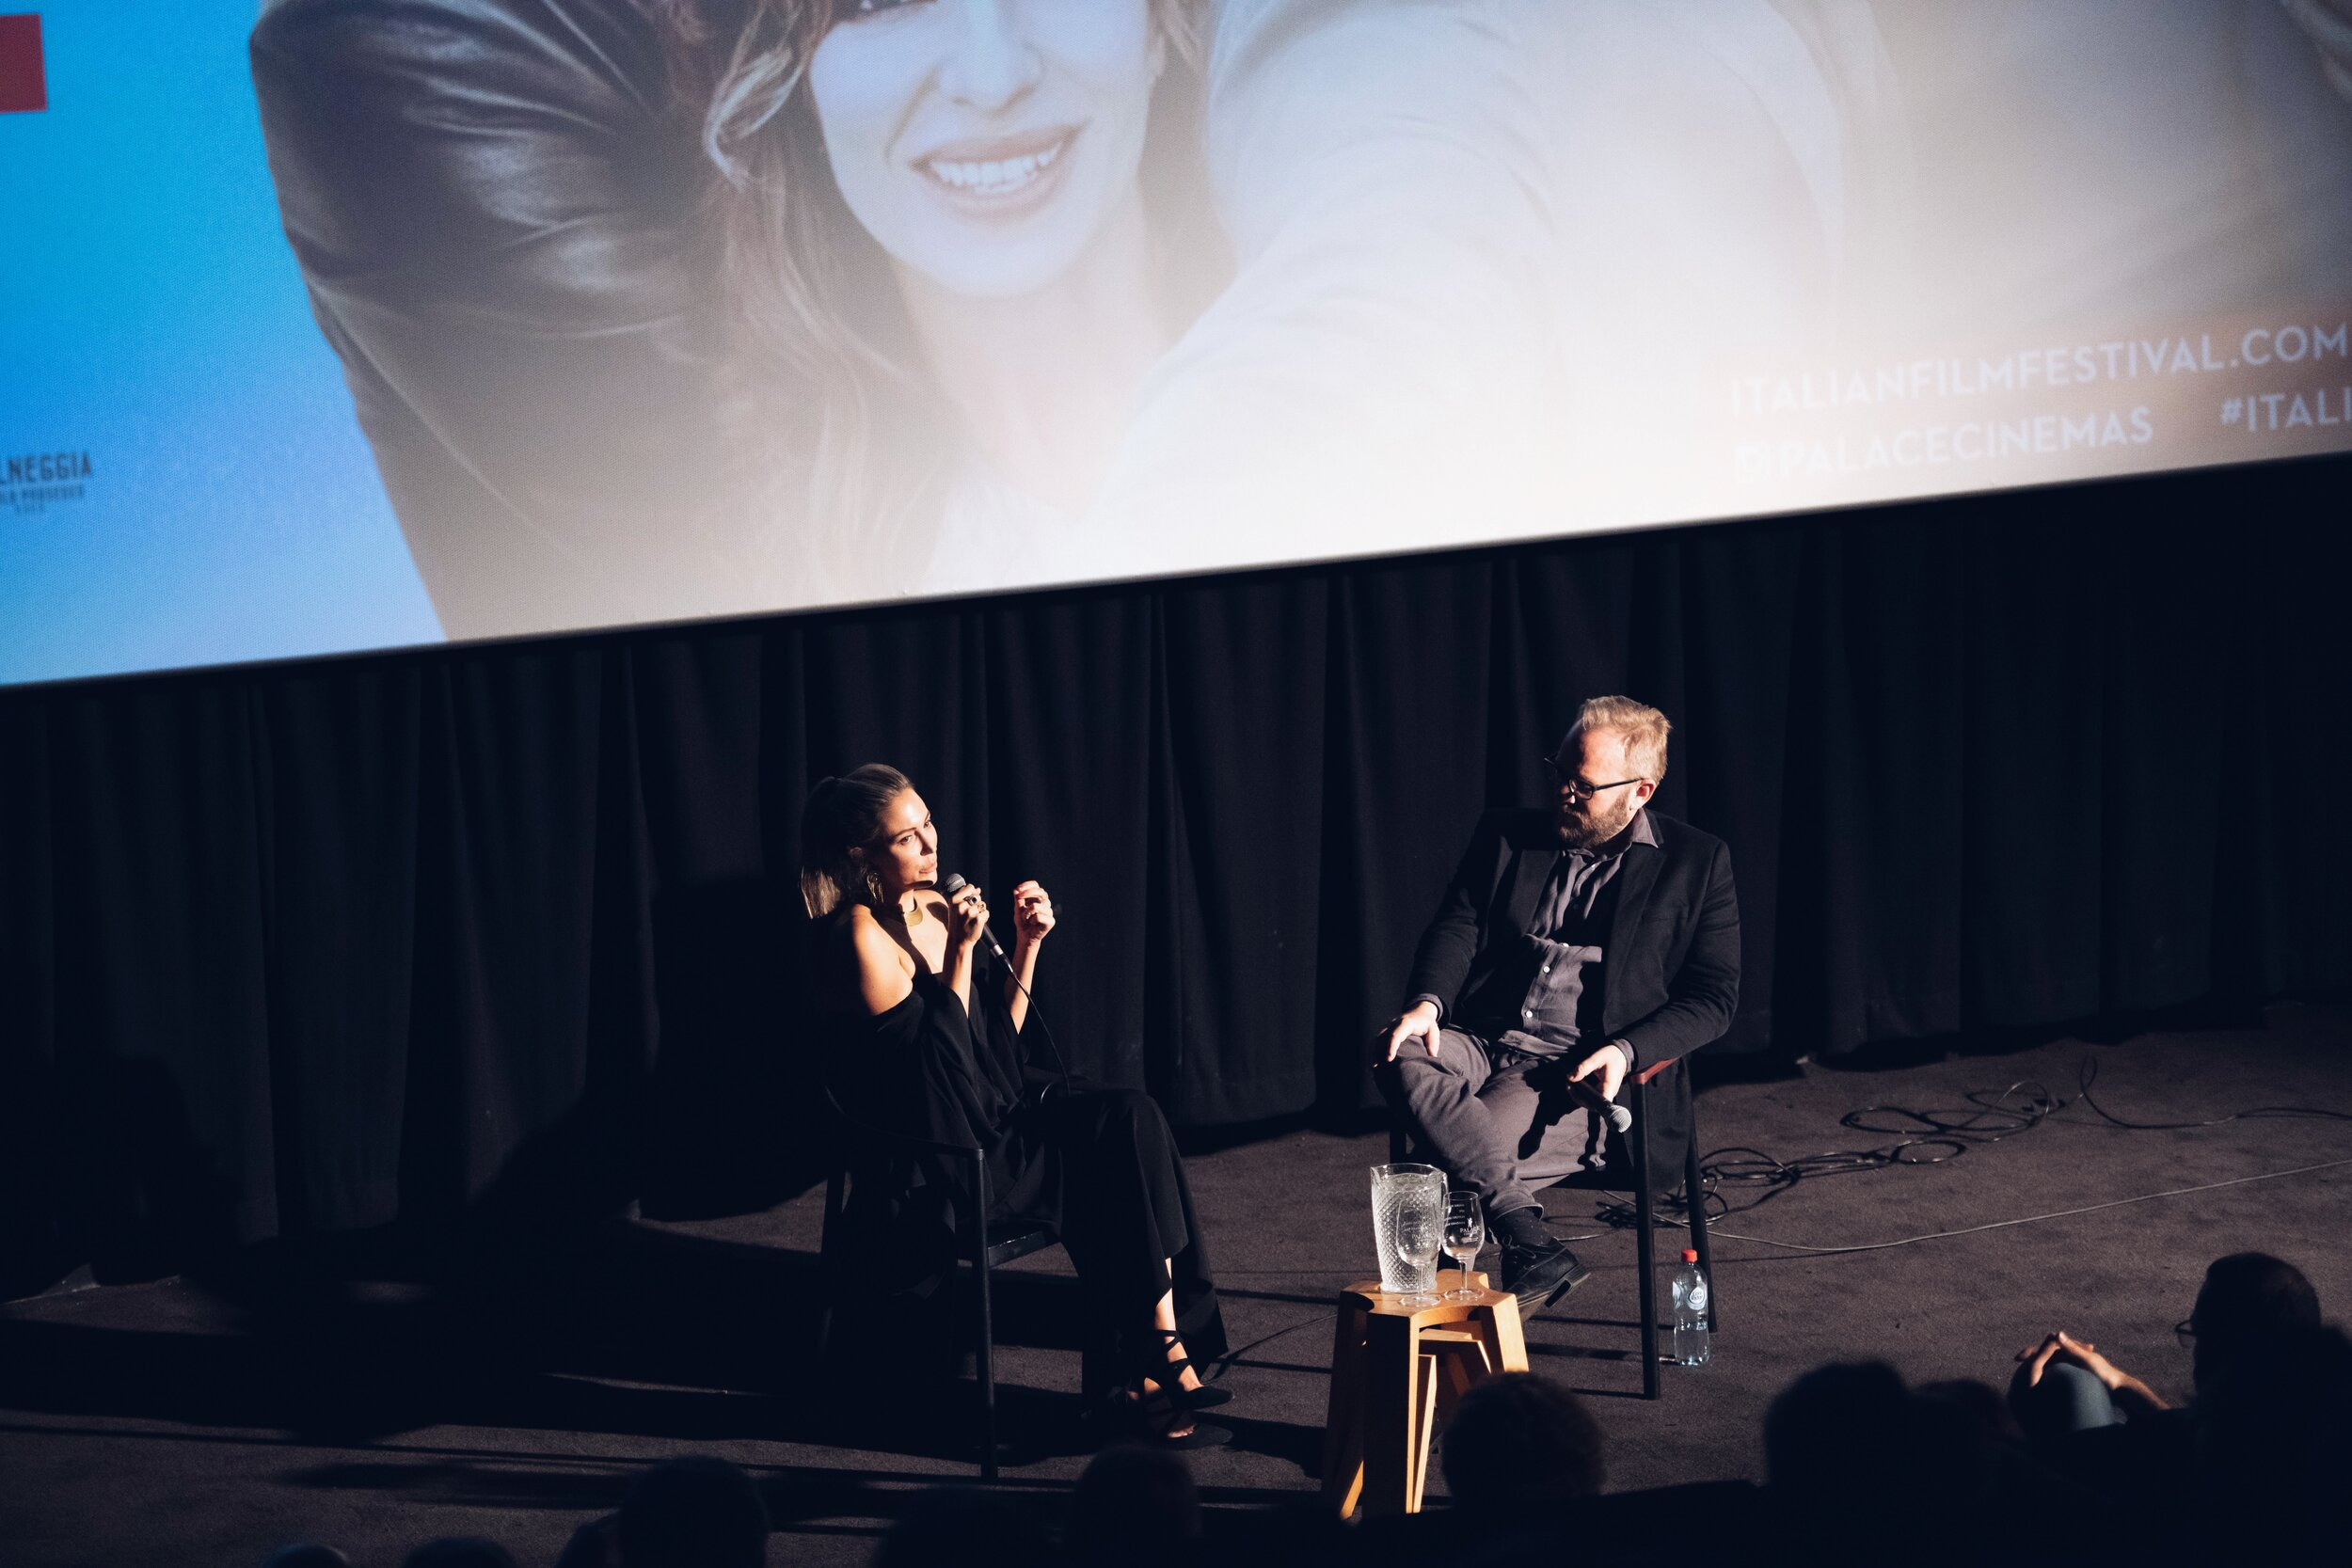 Q&A at the Premier of Balentes in Australia with Palace Cinemas